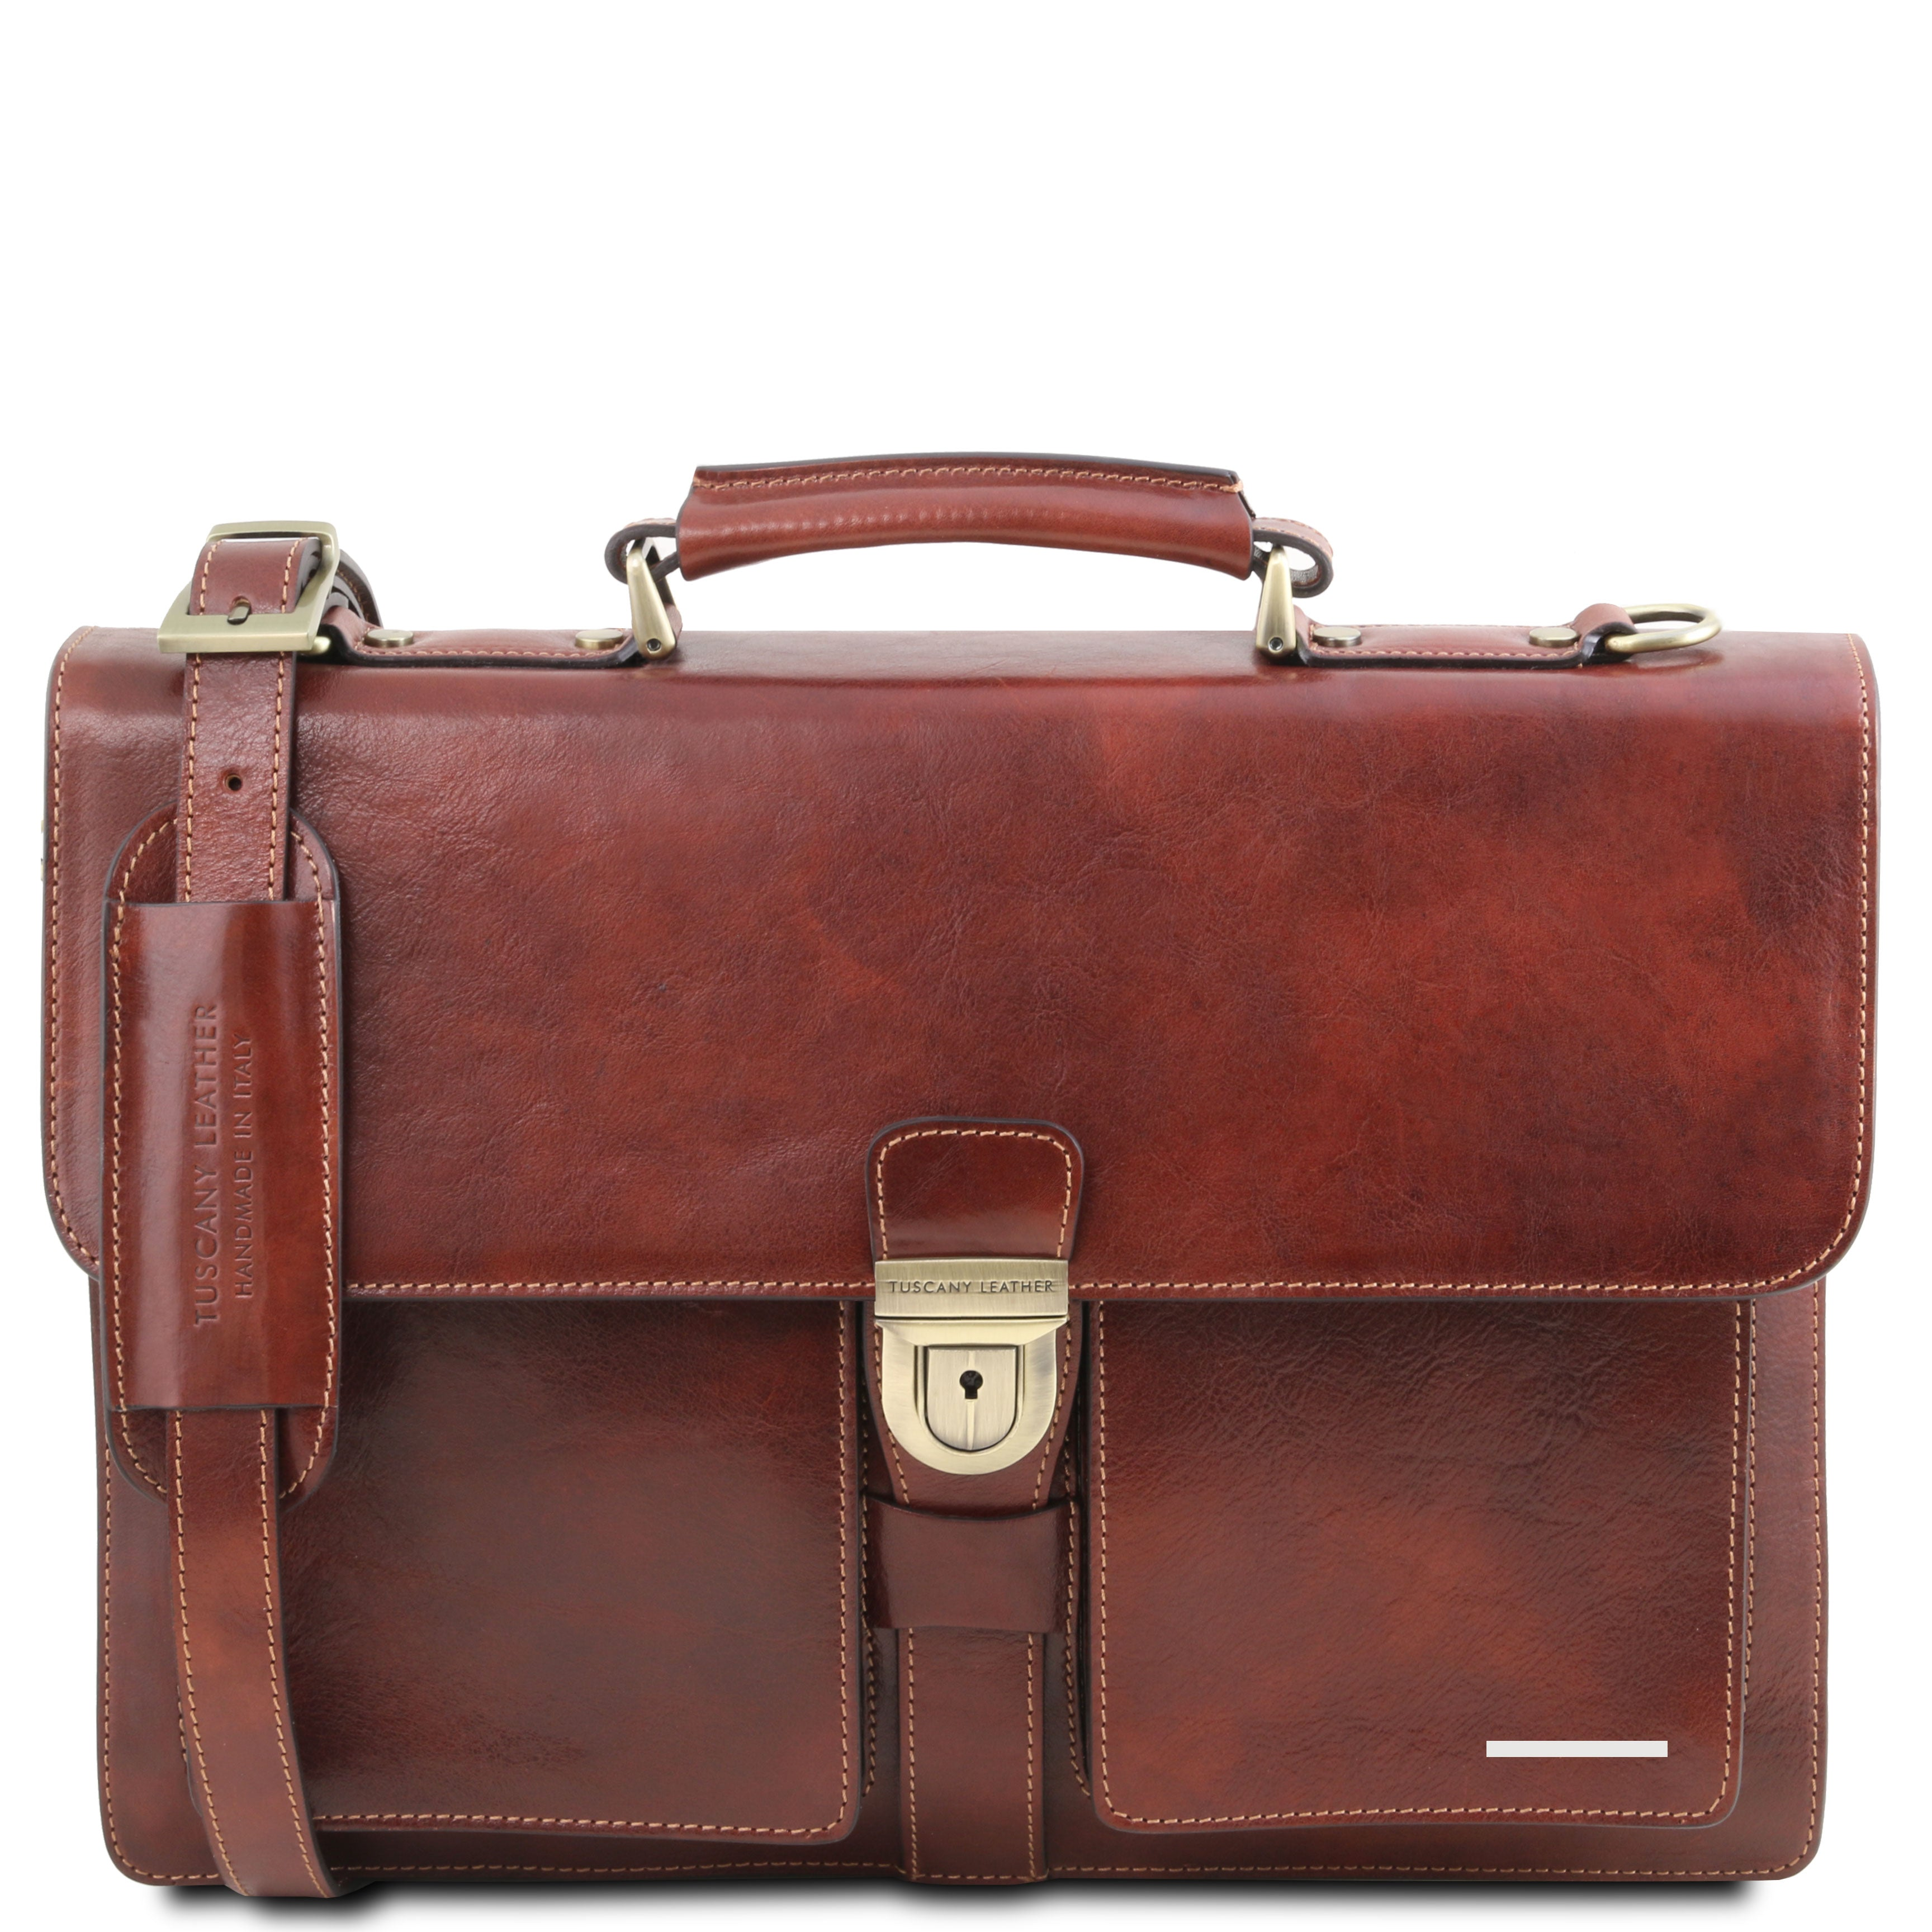 Assisi Briefcase 3 Compartments